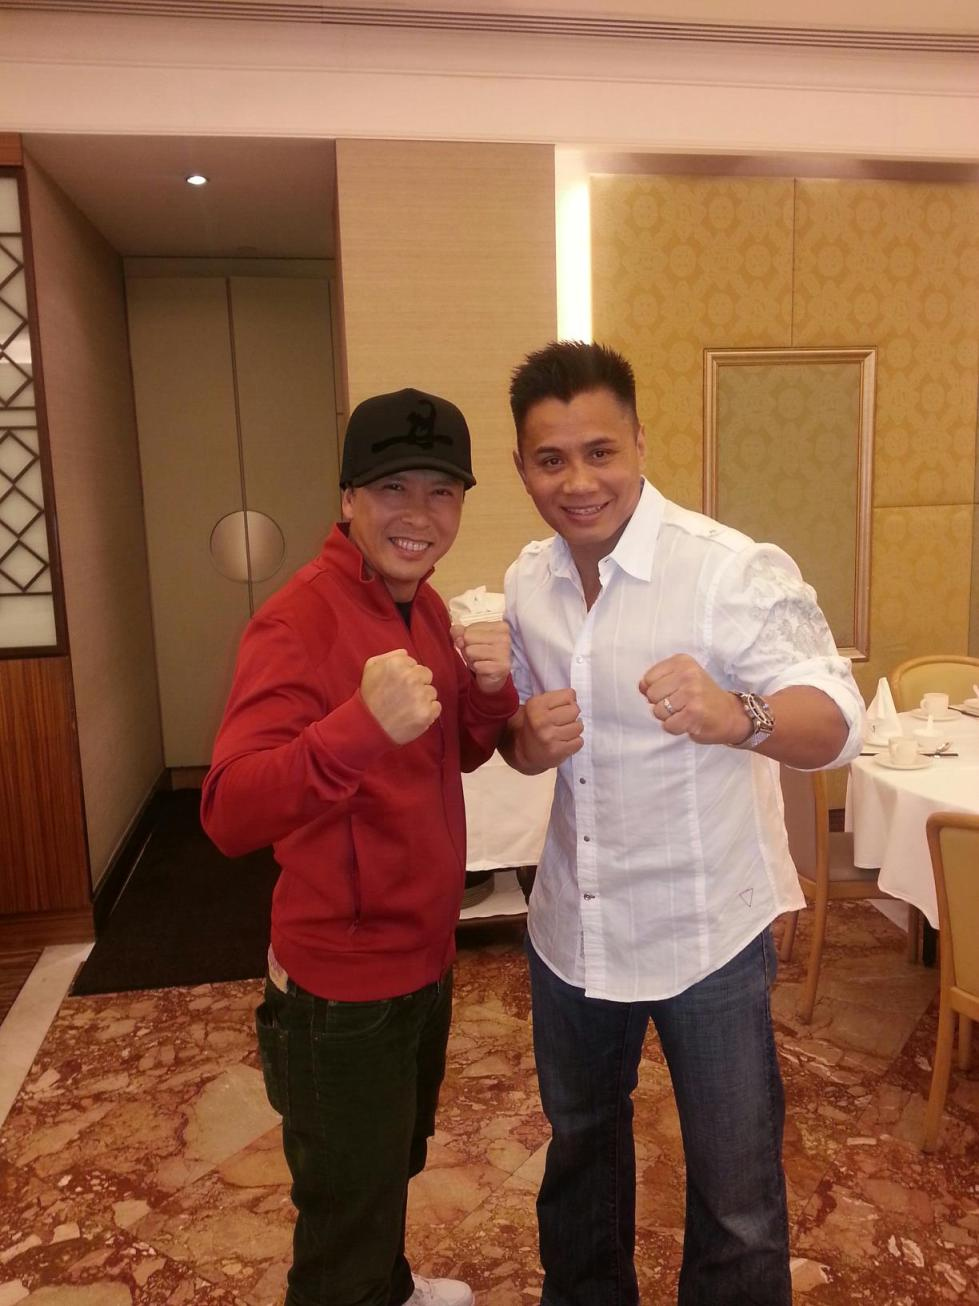 Donnie Yen and Cung Le dining in Hong Kong